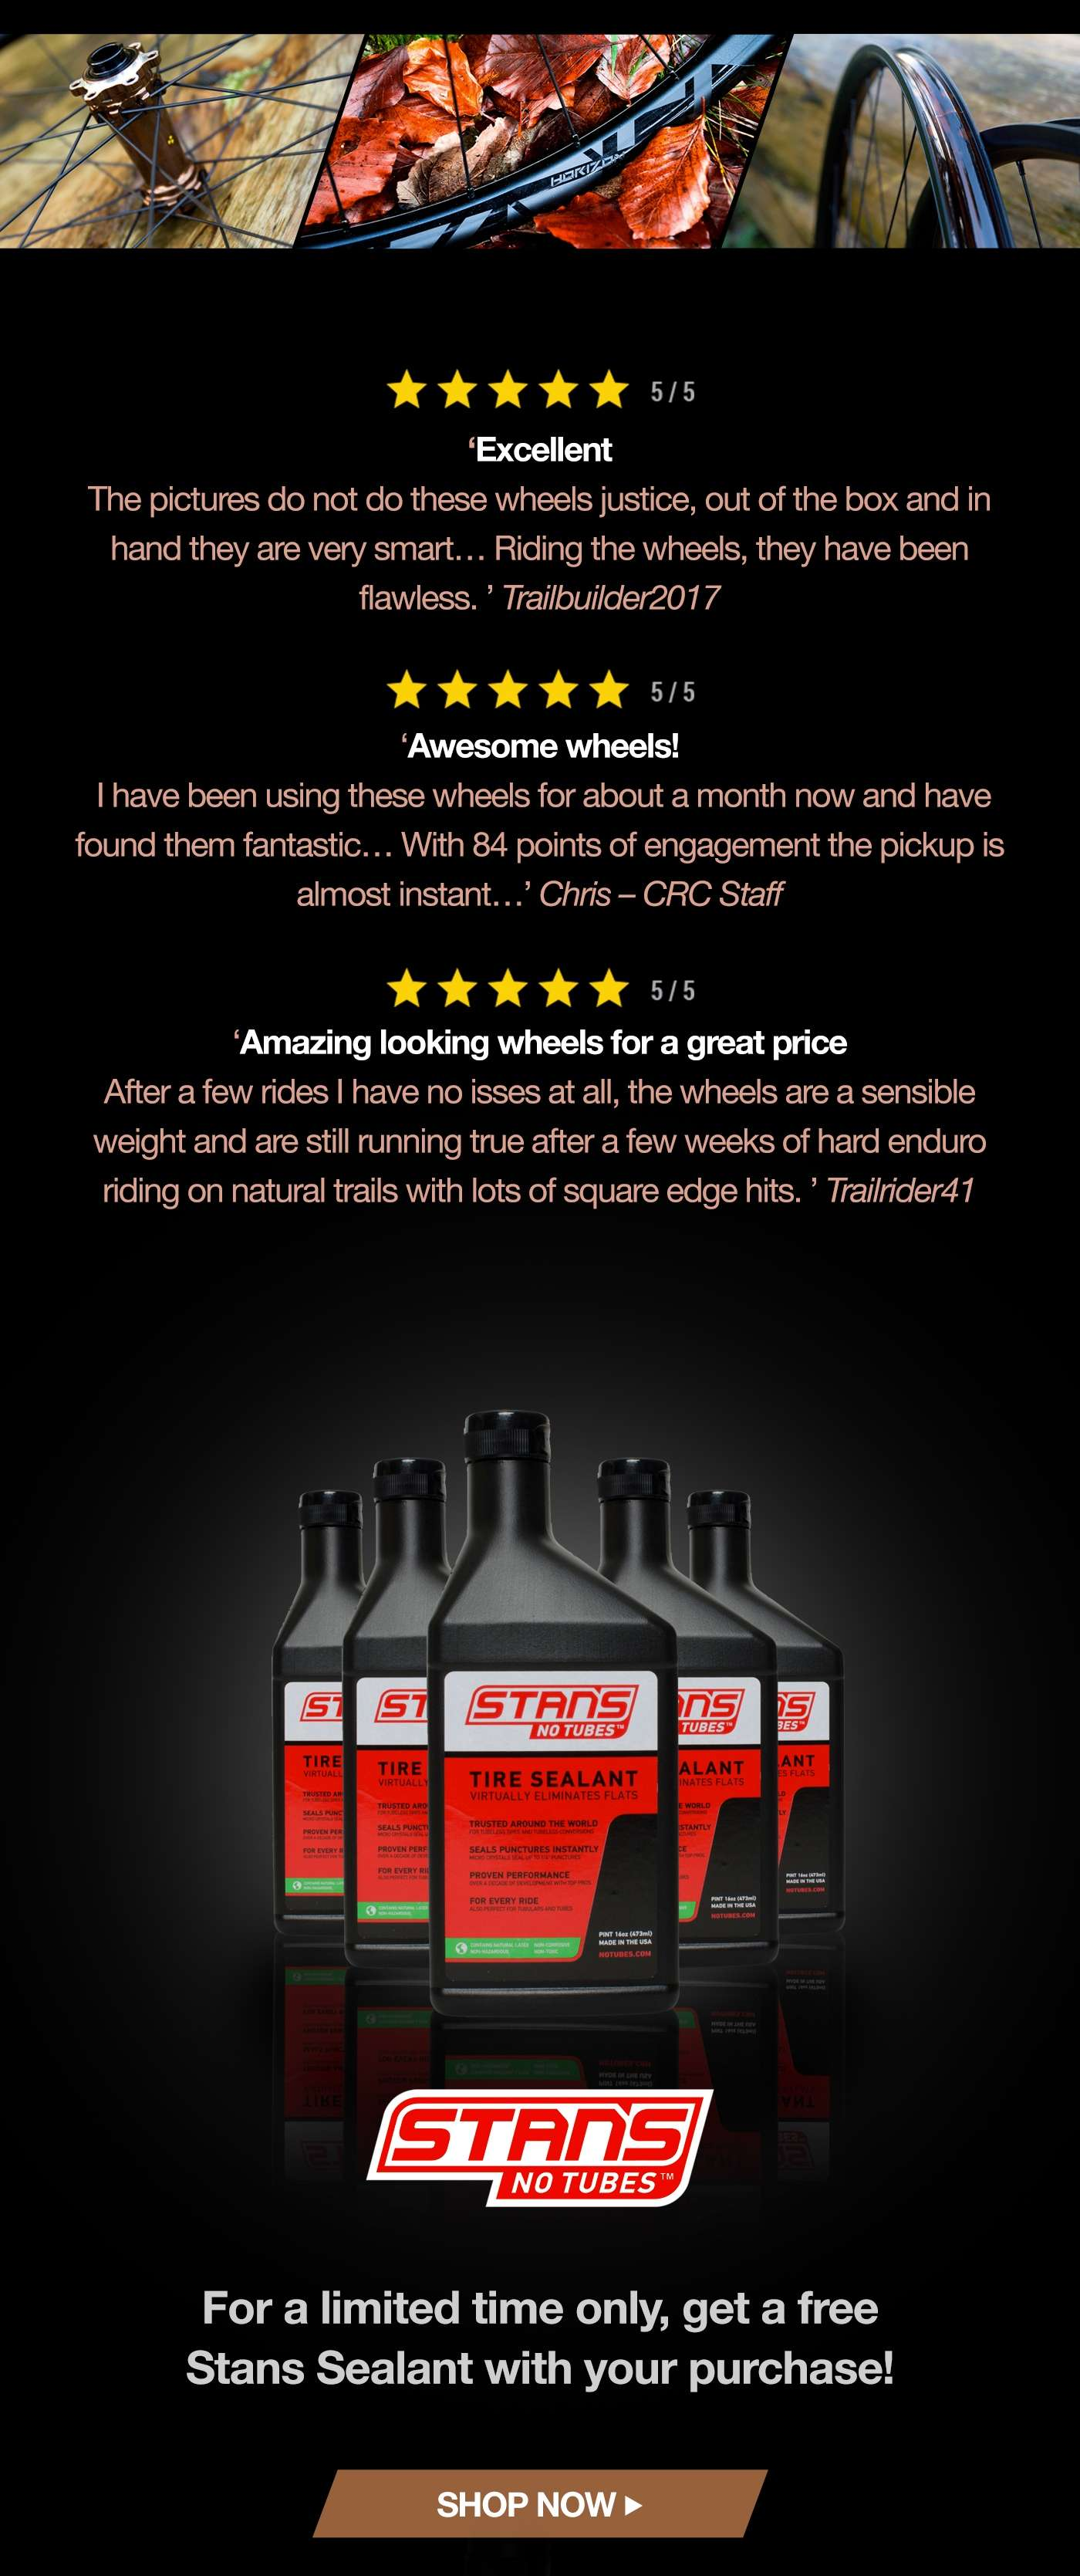 Free bottle of Stans Sealant with your puchase - limited time only.